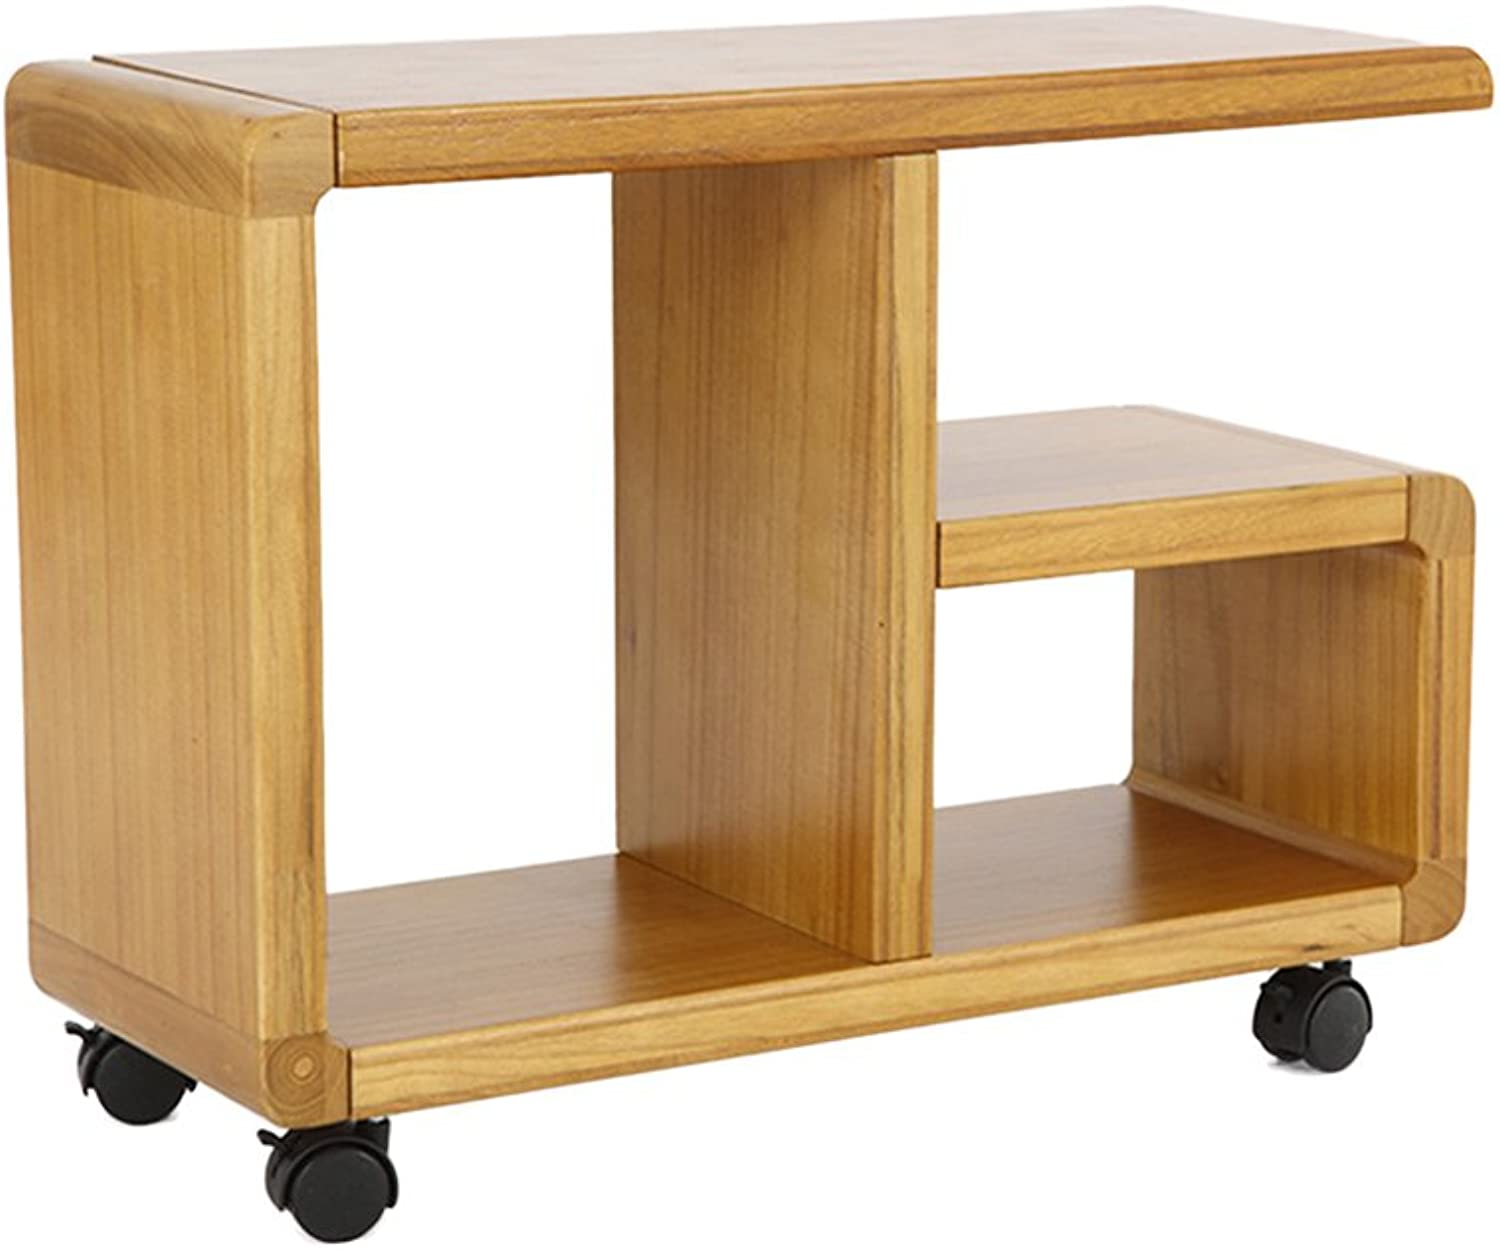 Moving Bedside Table, Wooden Sofa Table, Side Bookshelf, Small Coffee Table, 60  23  45.5 cm (color   B)